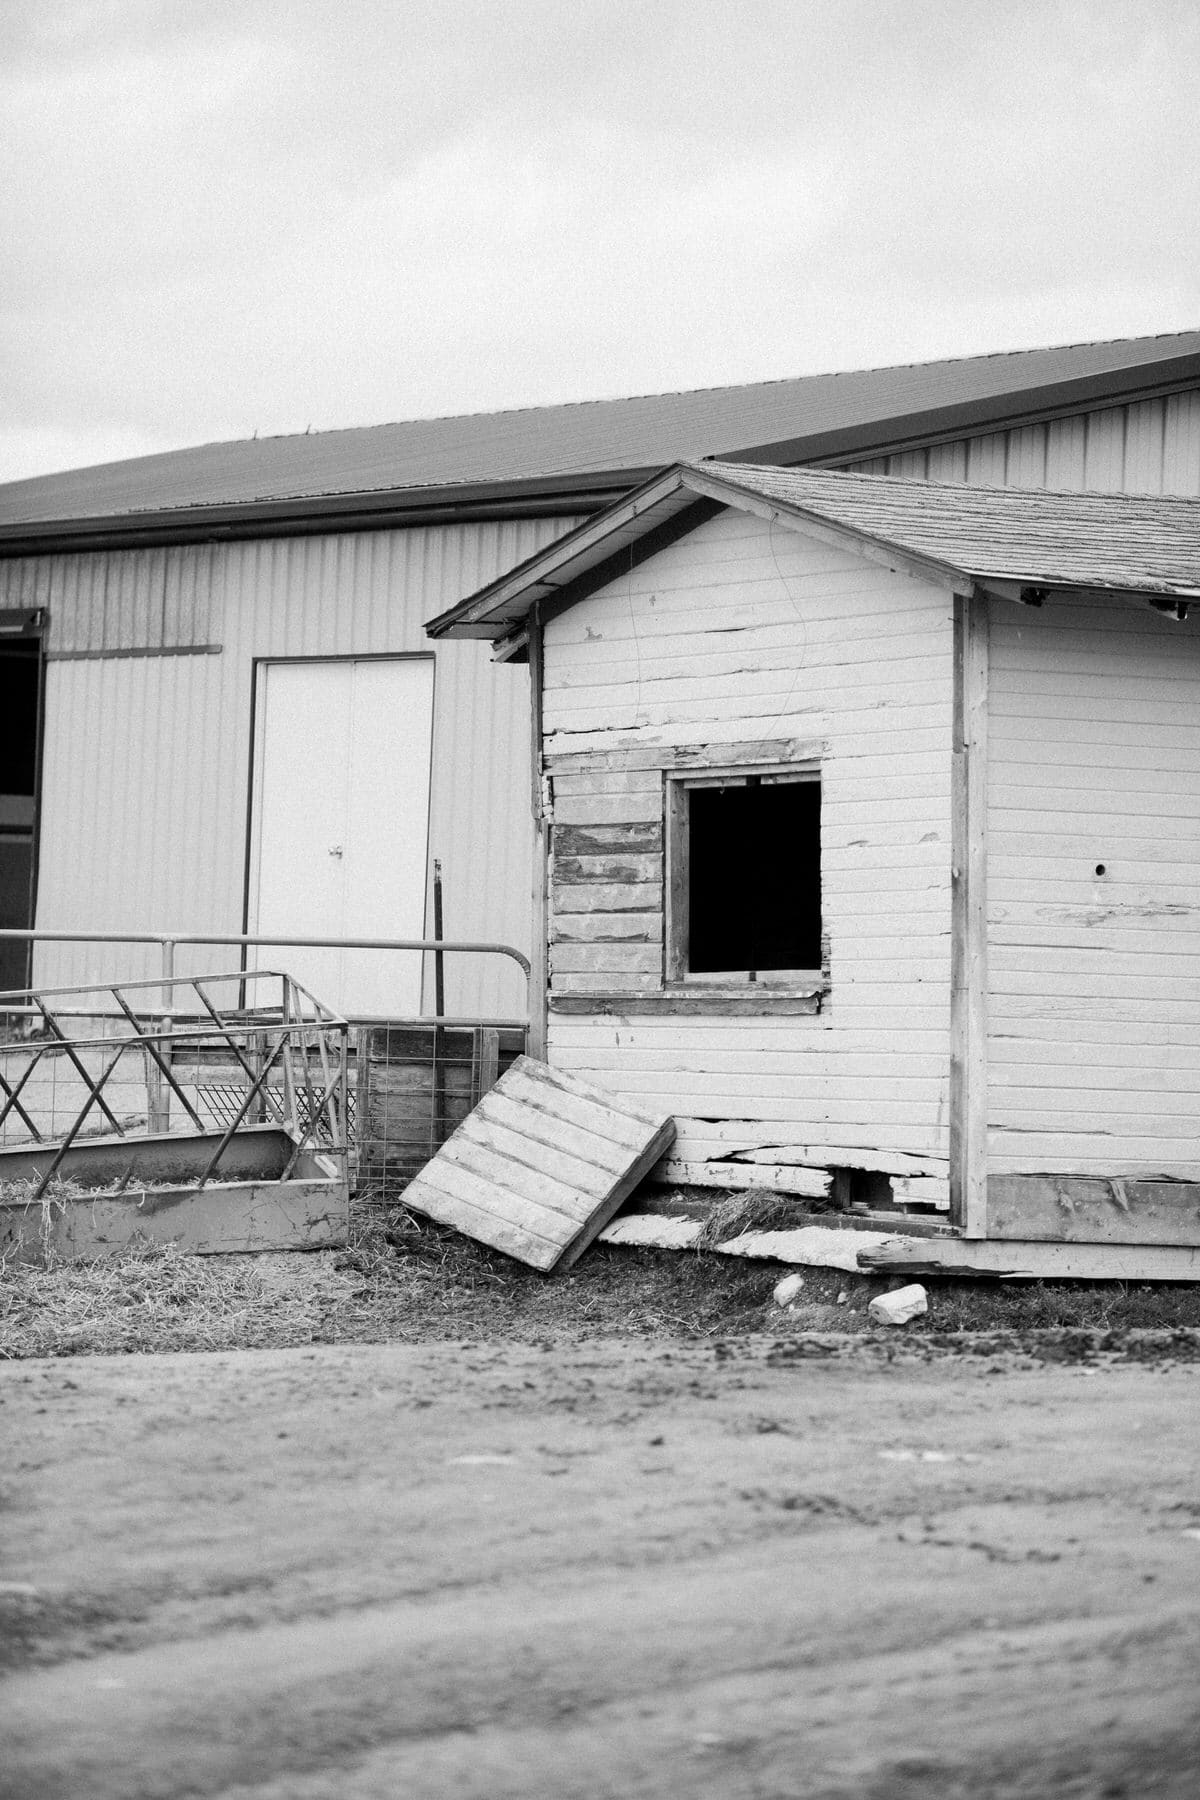 Cristo-Rey-Ranch-Wisconsin-black-and-white-fine-art-photography-by-Studio-L-photographer-Laura-Schneider-_1727